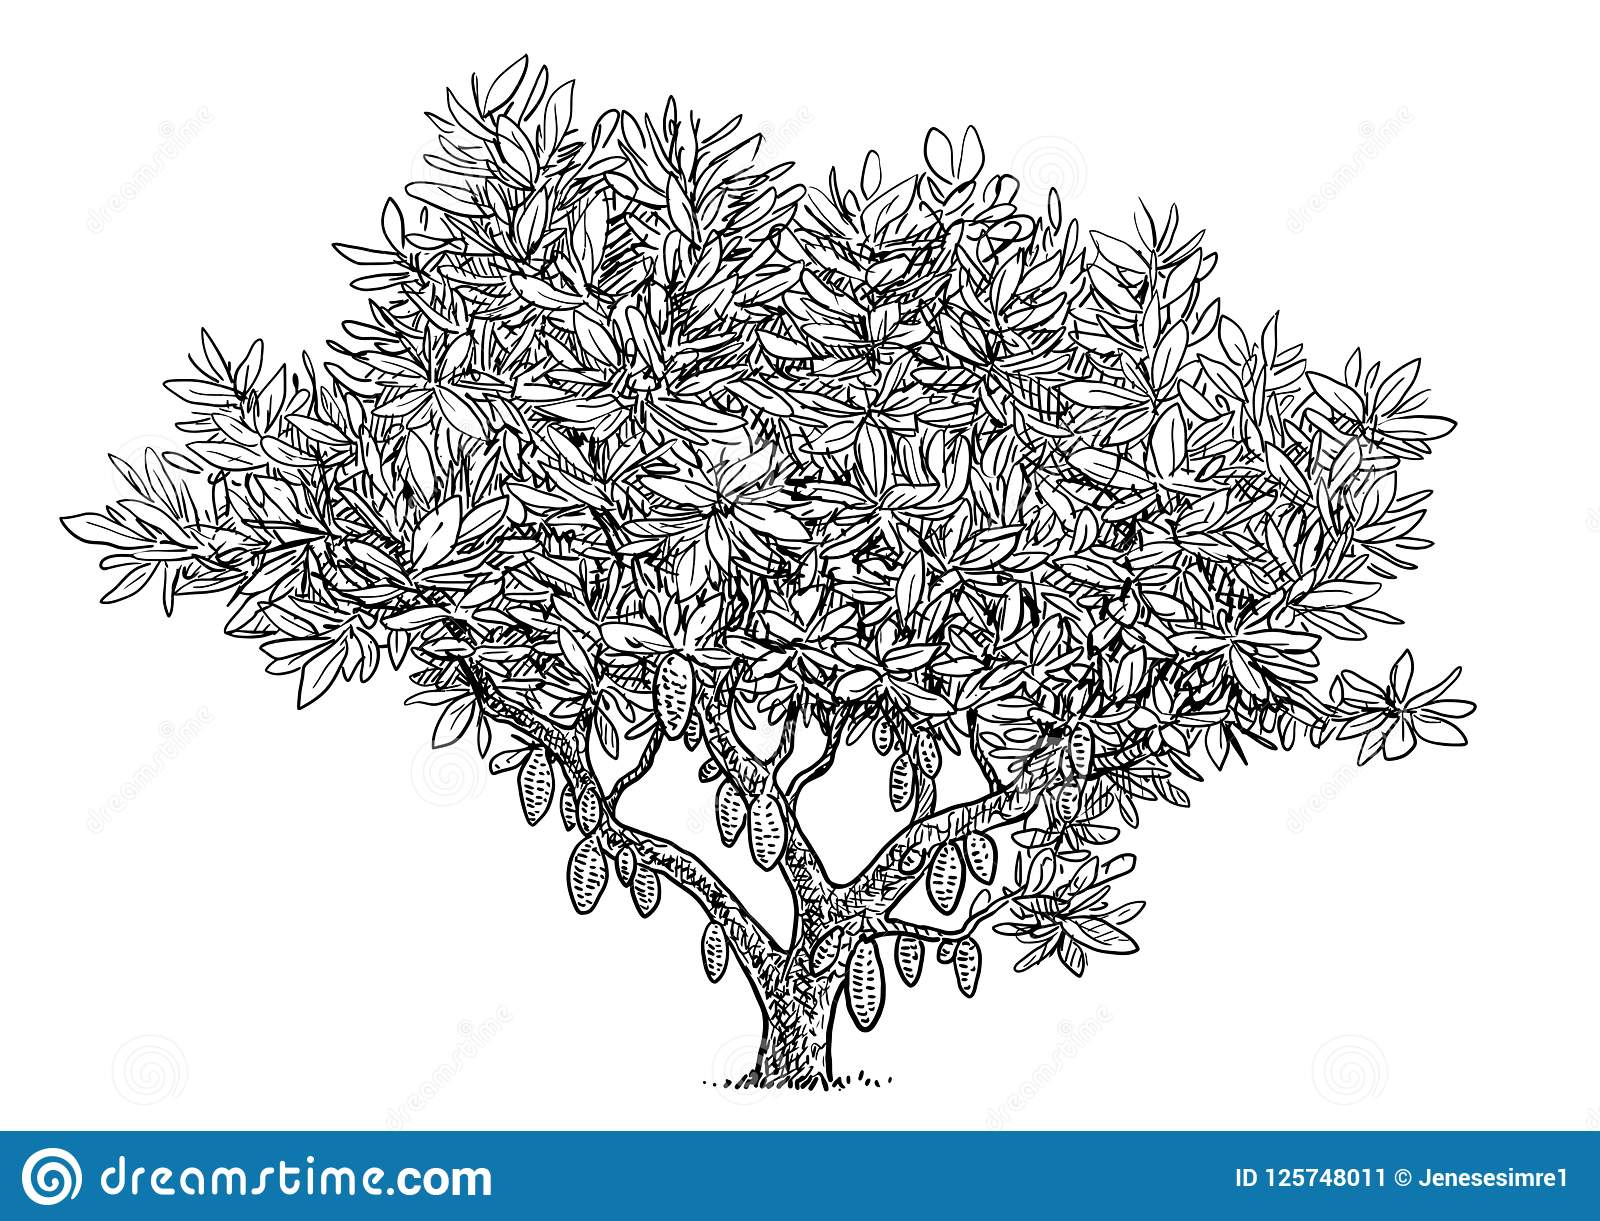 Cocoa Tree Illustration Drawing Engraving Ink Line Art Vector Stock Vector Illustration Of Growth Flora 125748011